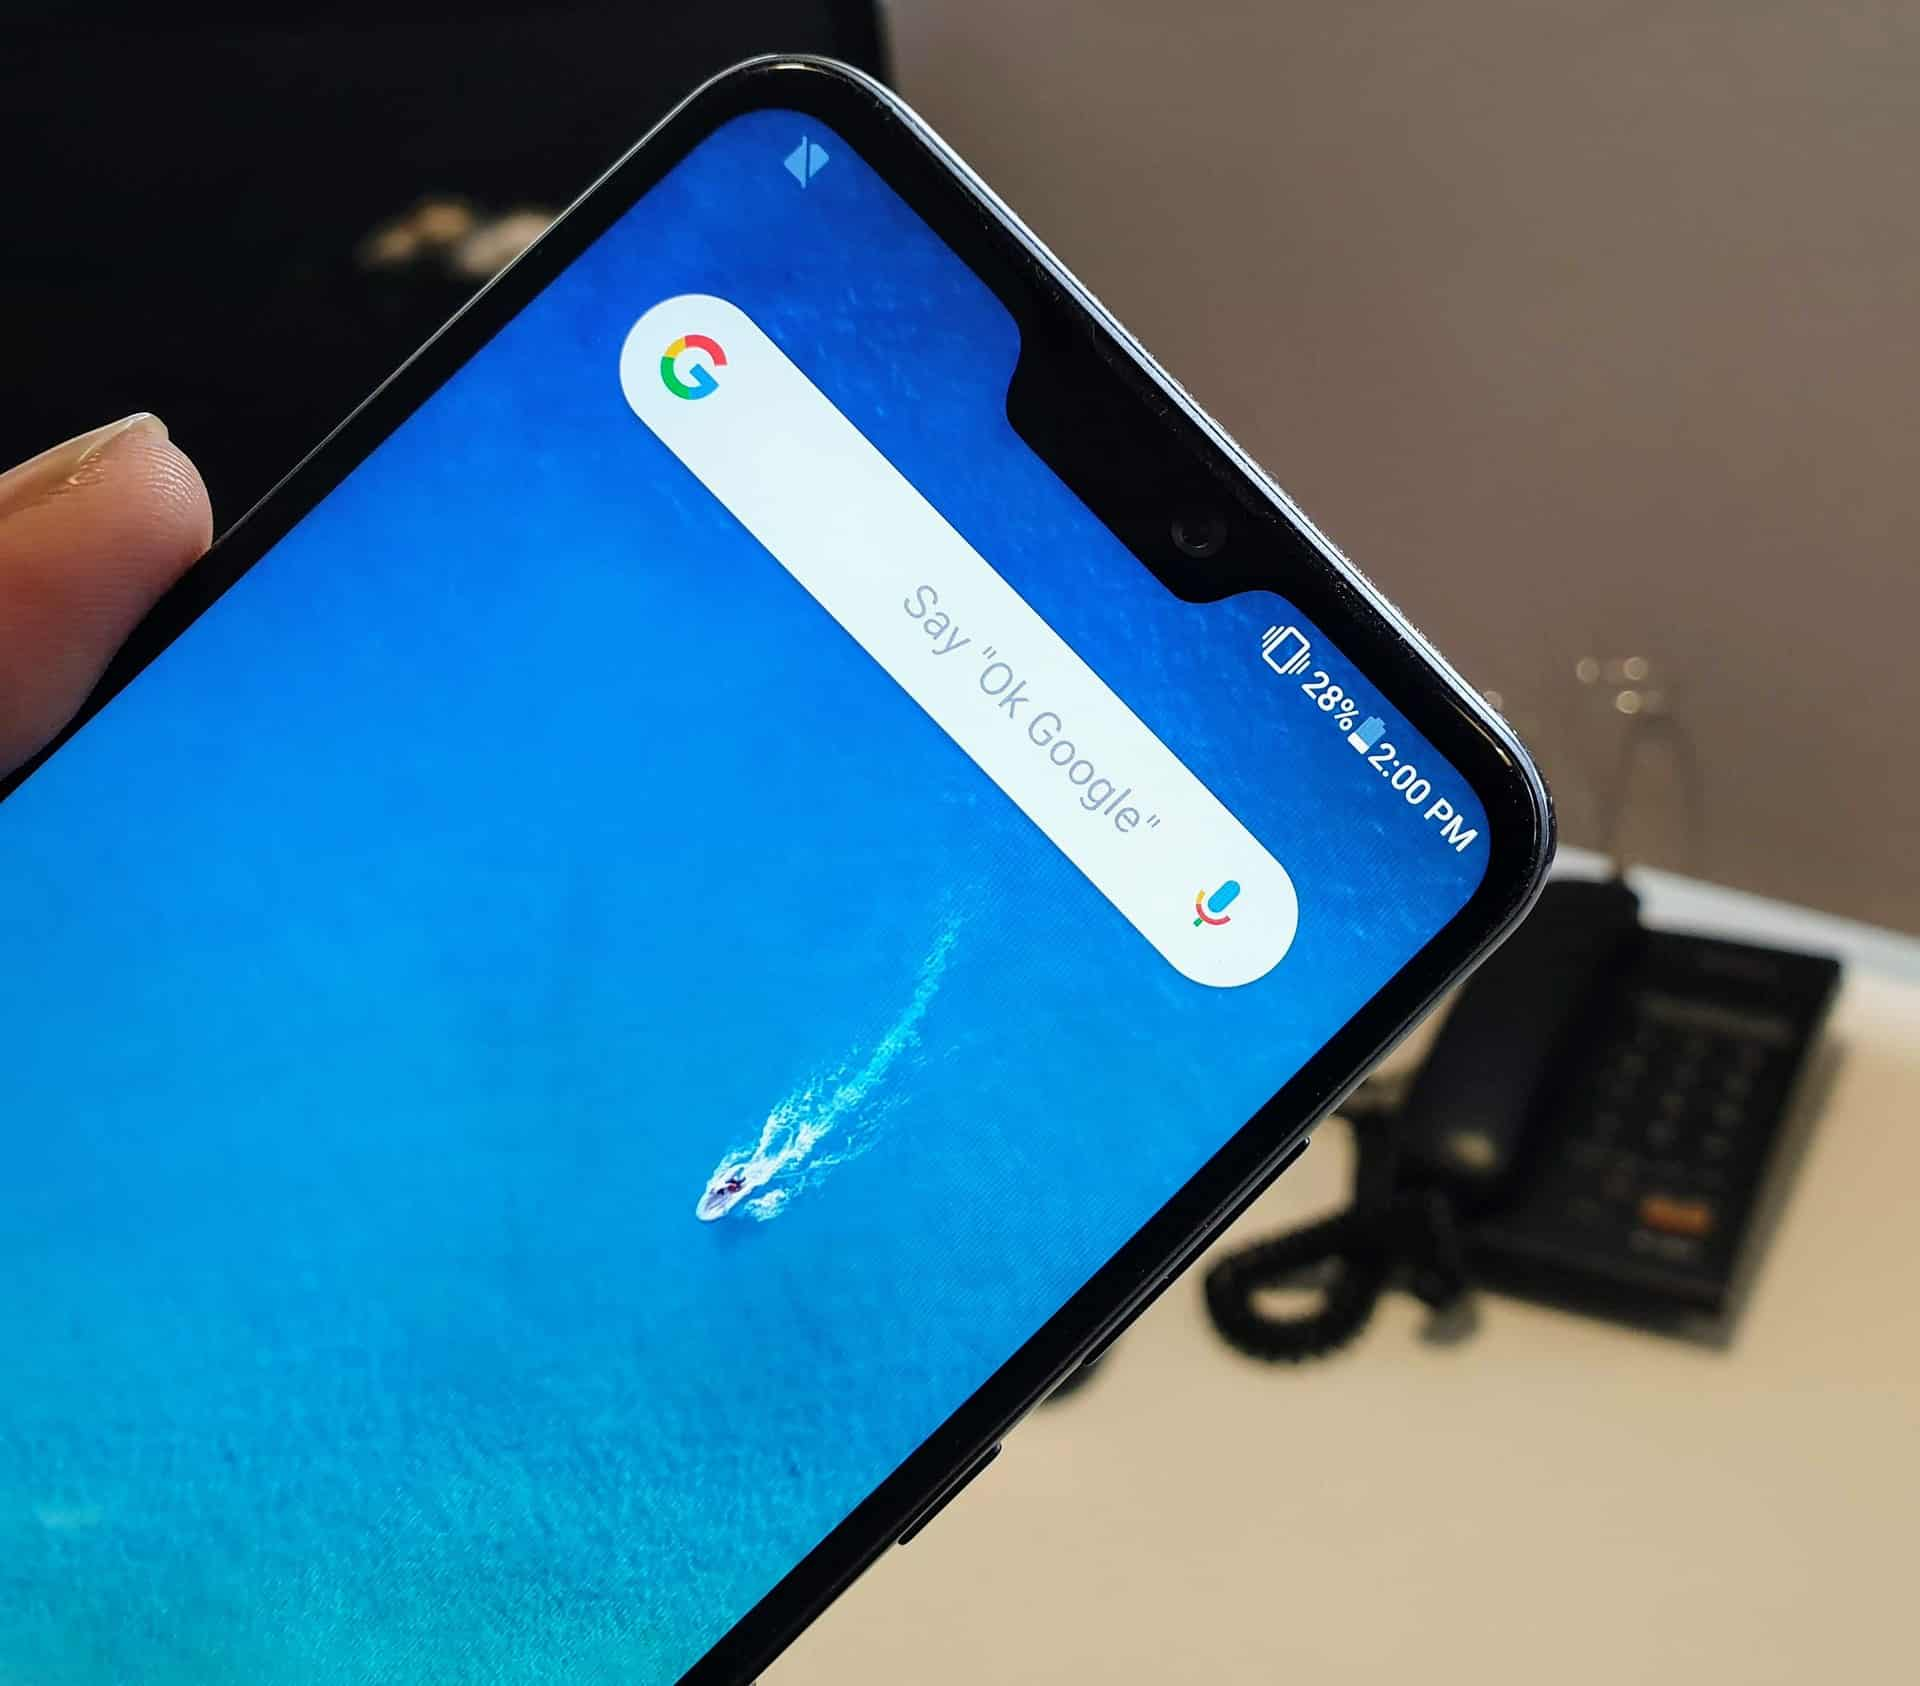 Asus Zenfone Max Pro M2 Review - Is This The Best Budget-end Smartphone? - 3